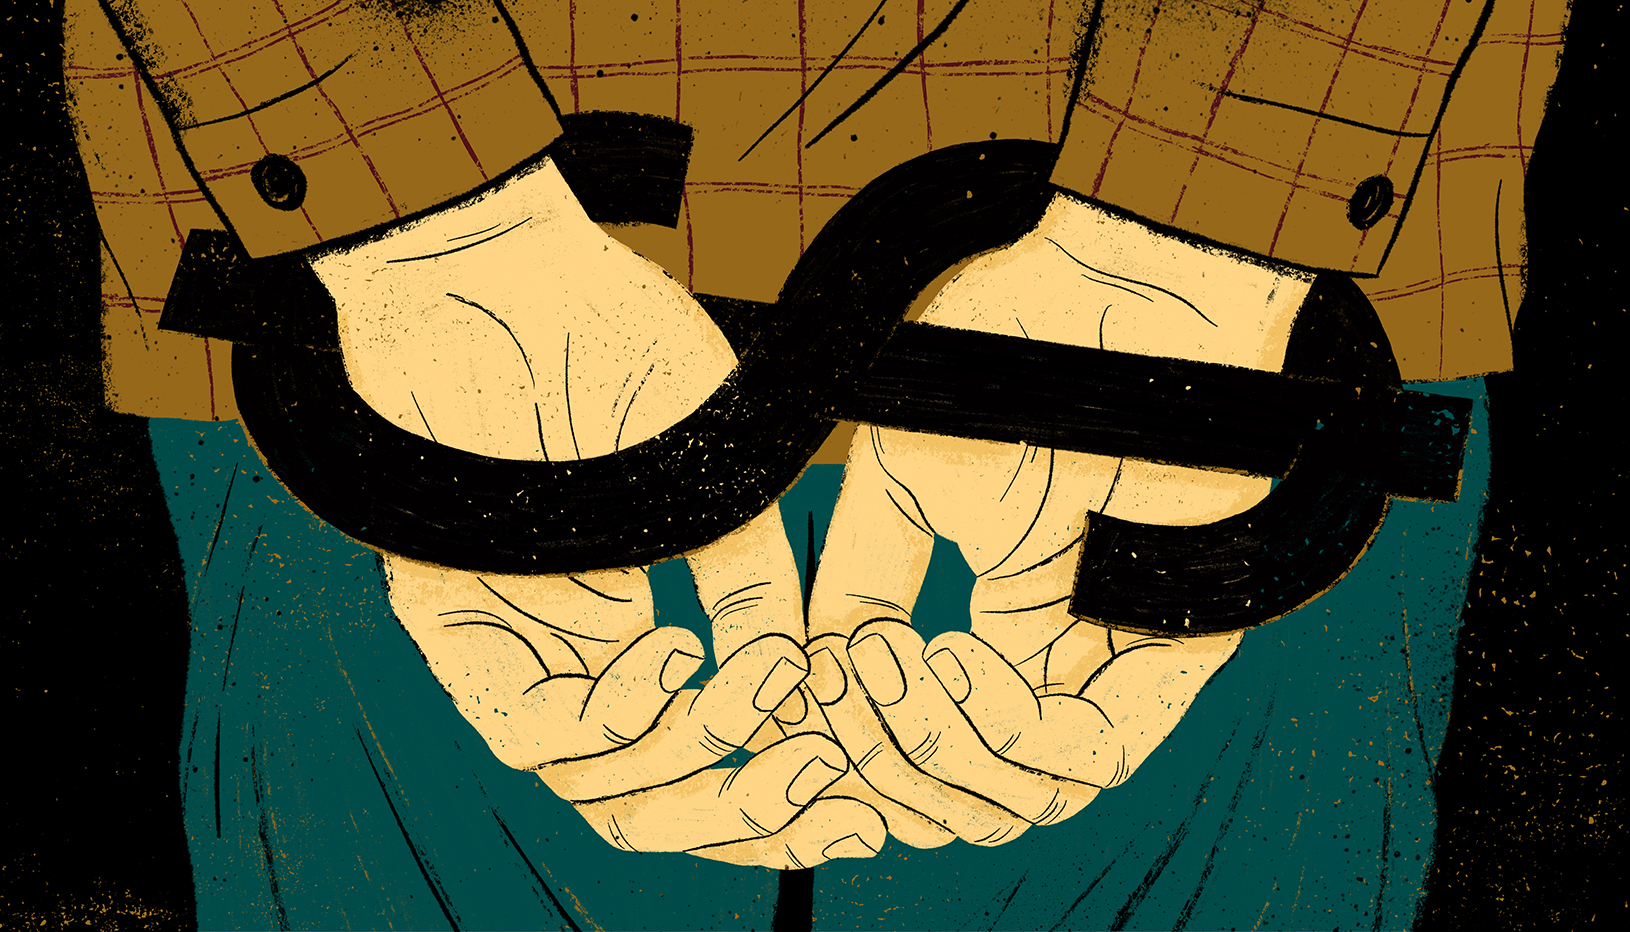 Illustration of hands locked in a dollar sign